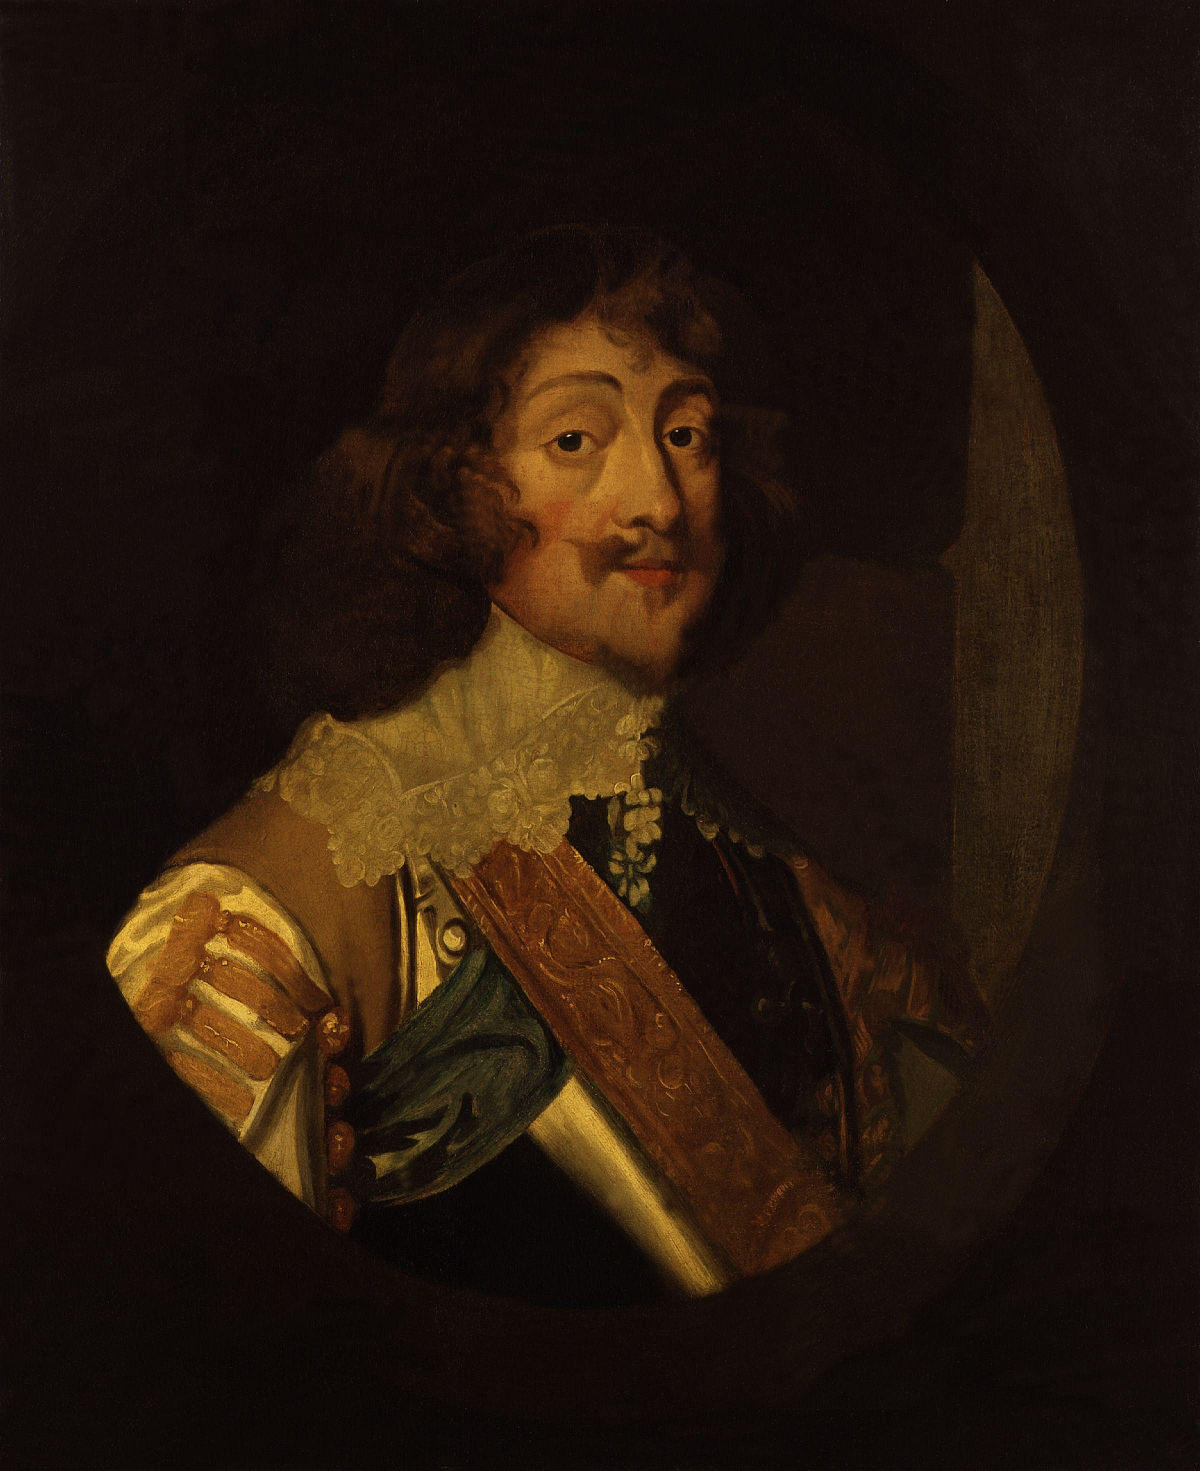 1200px-henry_rich_1st_earl_of_holland_by_sir_anthony_van_dyck.jpg